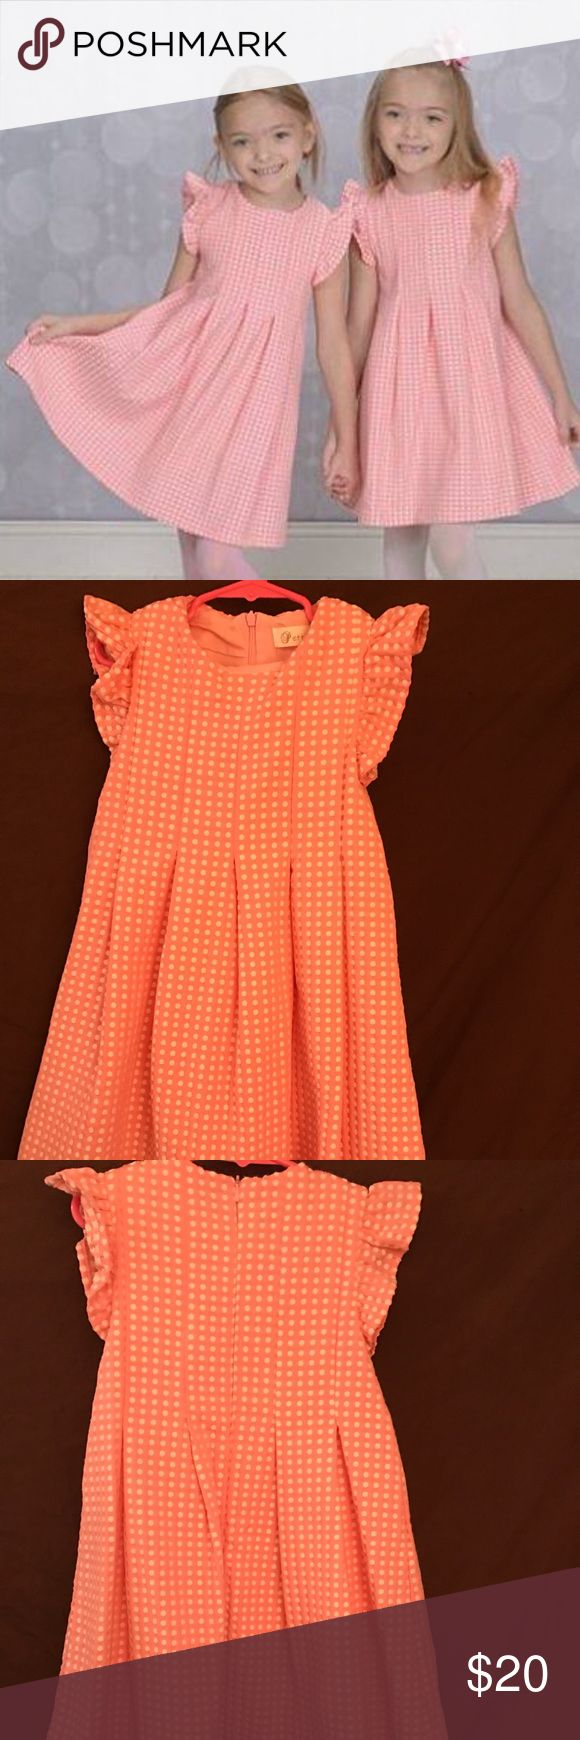 "Pink with white dots dress. Very pretty girls formal dress. We just used this to take Easter pictures. They were worn for maybe 10 minutes. My daughters were a size 6/7  and are 49 inches long. the dress fit very nicely. It's about an inch above their knees. The length of the dress from the shoulders measures 25"" Dresses Formal"